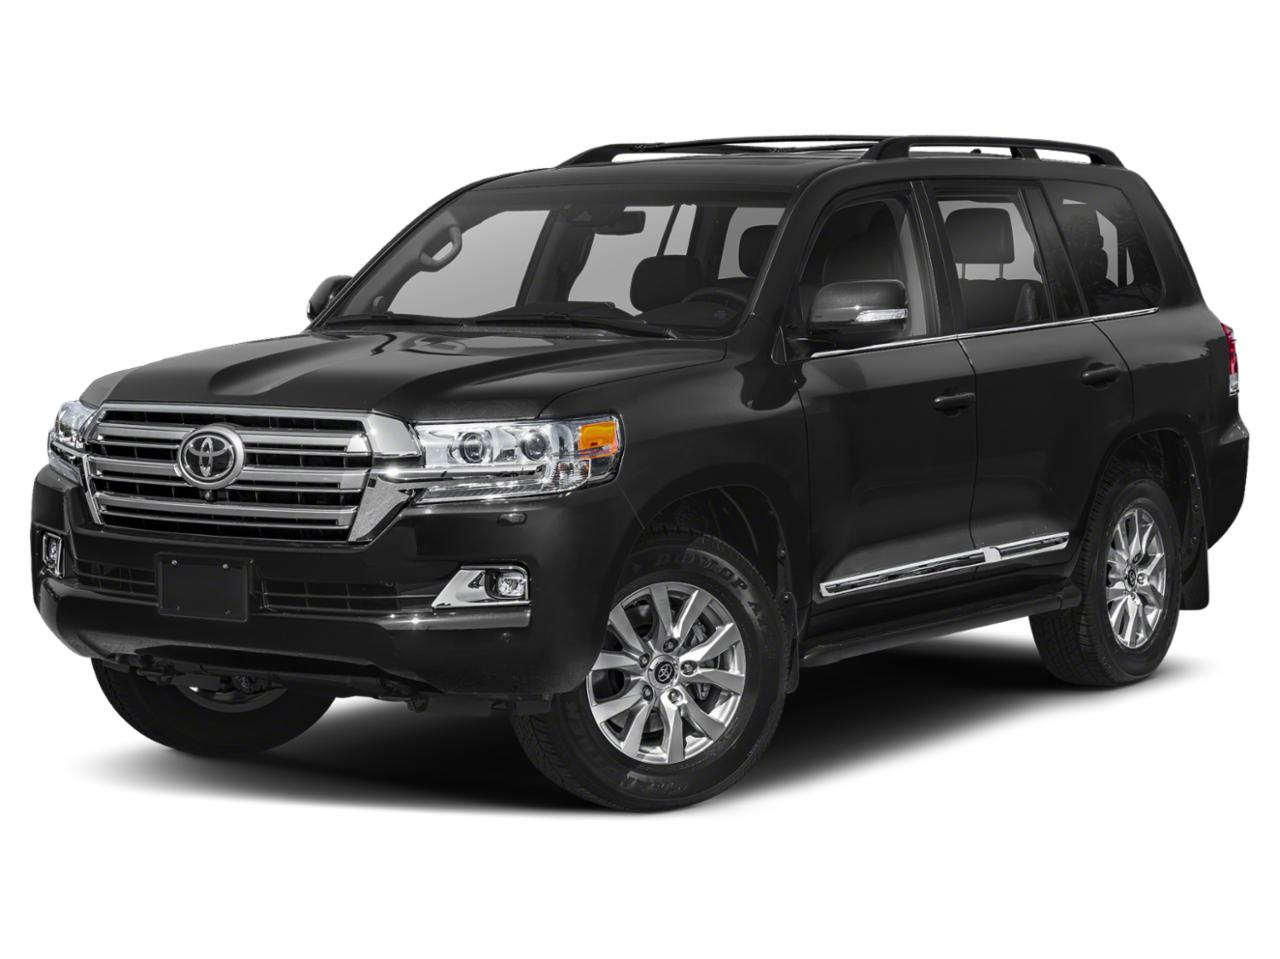 2019 Toyota Land Cruiser Vehicle Photo in Wilmington, NC 28405